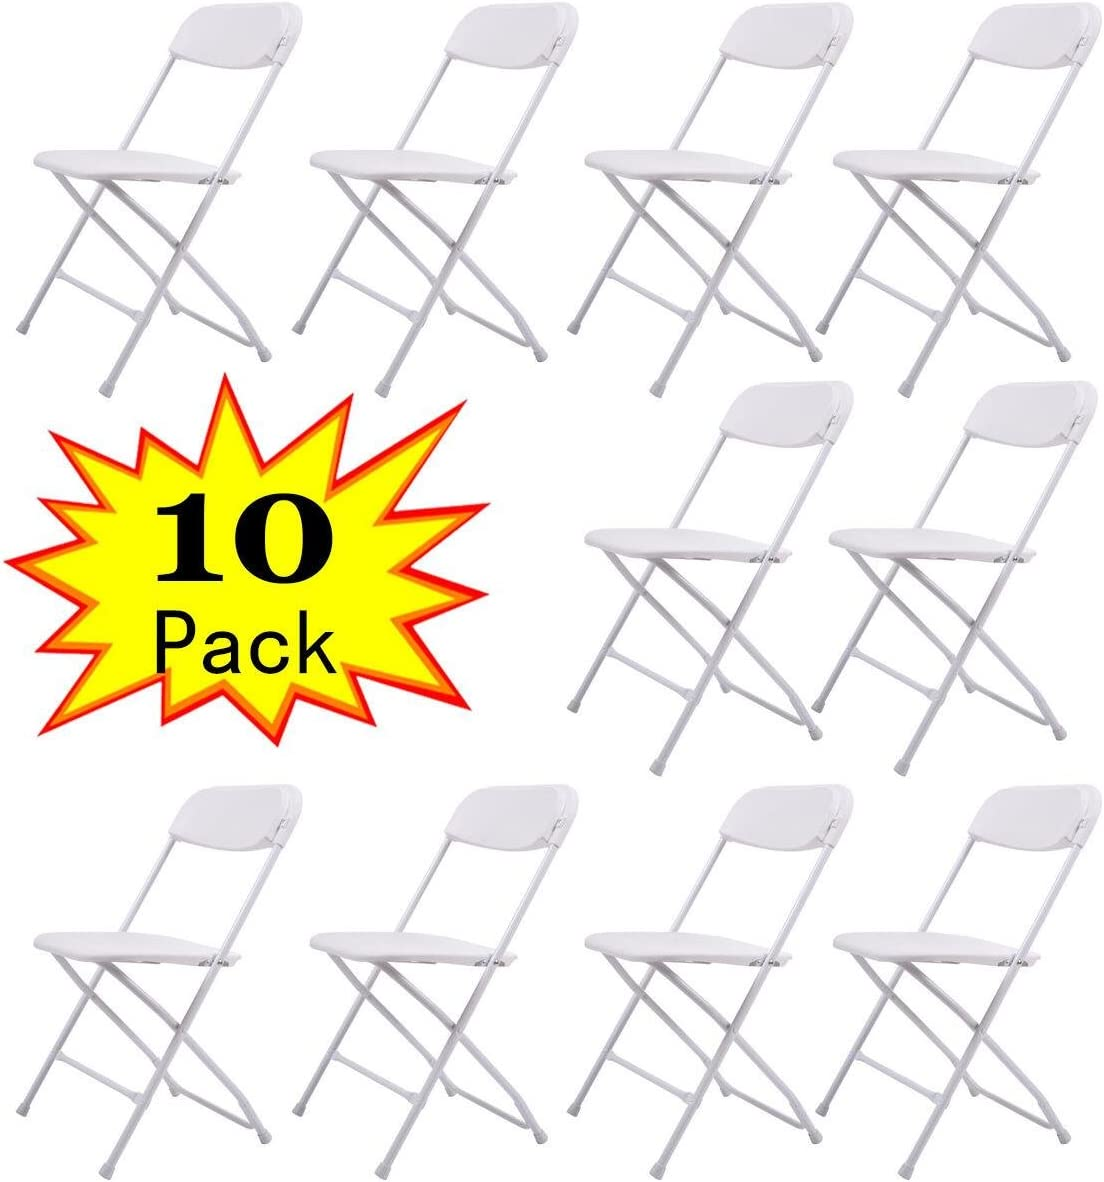 JAXPETY 10PCS Plastic Folding Chairs Wedding Banquet Seat Premium Party Event Chair White